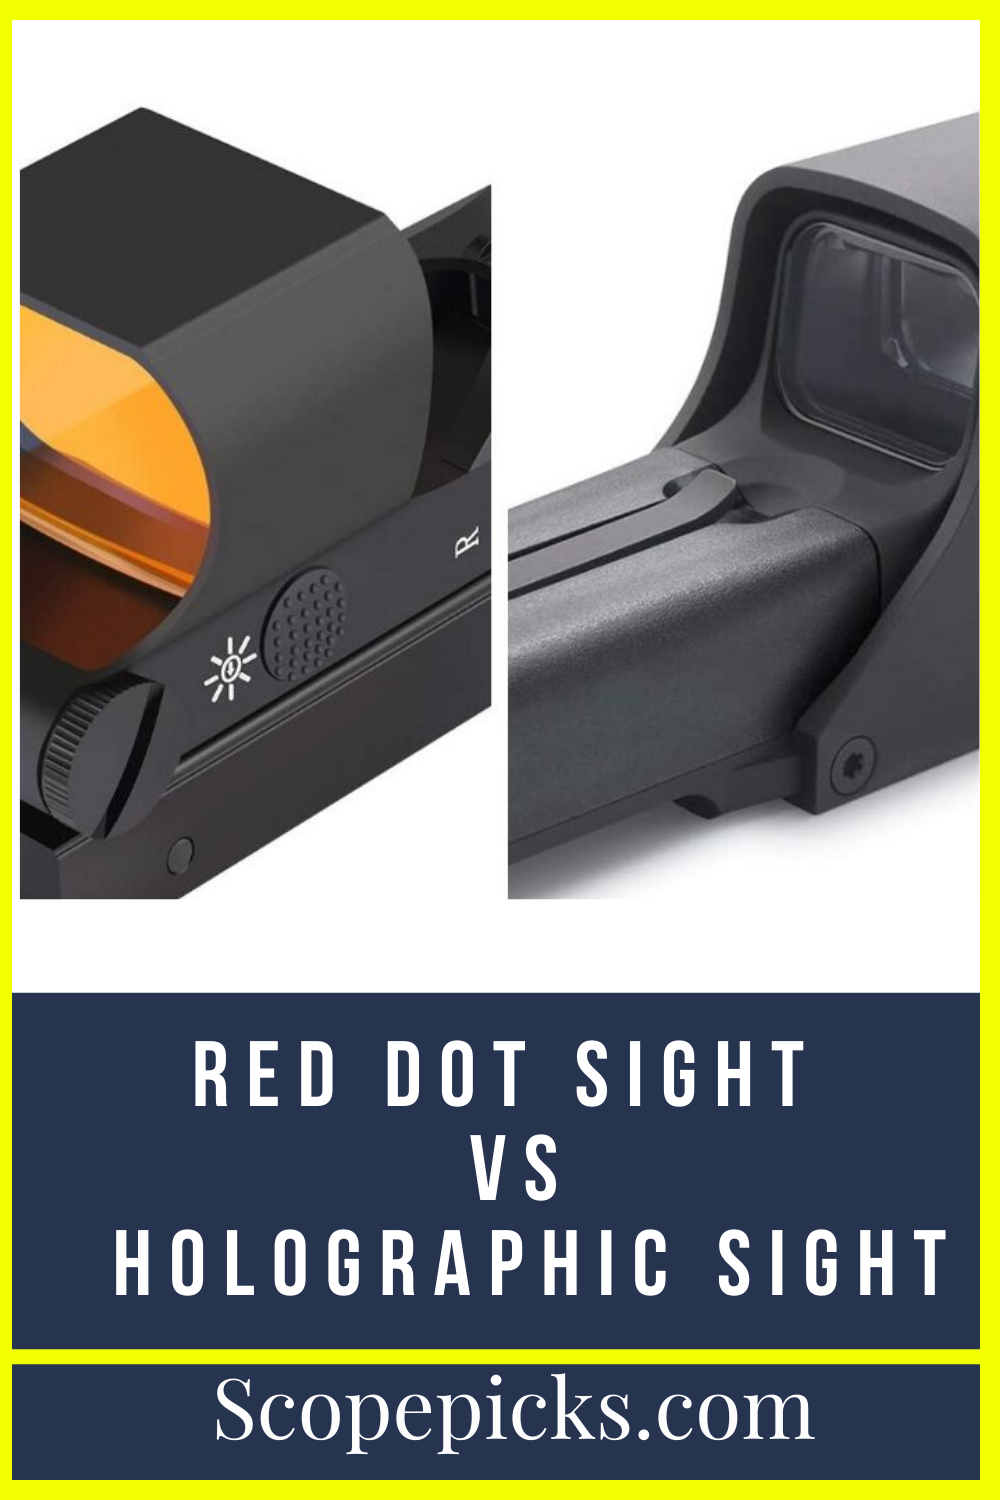 Red Dot Sight Vs Holographic Sight A Comparison Guide Red Dot Sight Red Dots Red Dot Scope